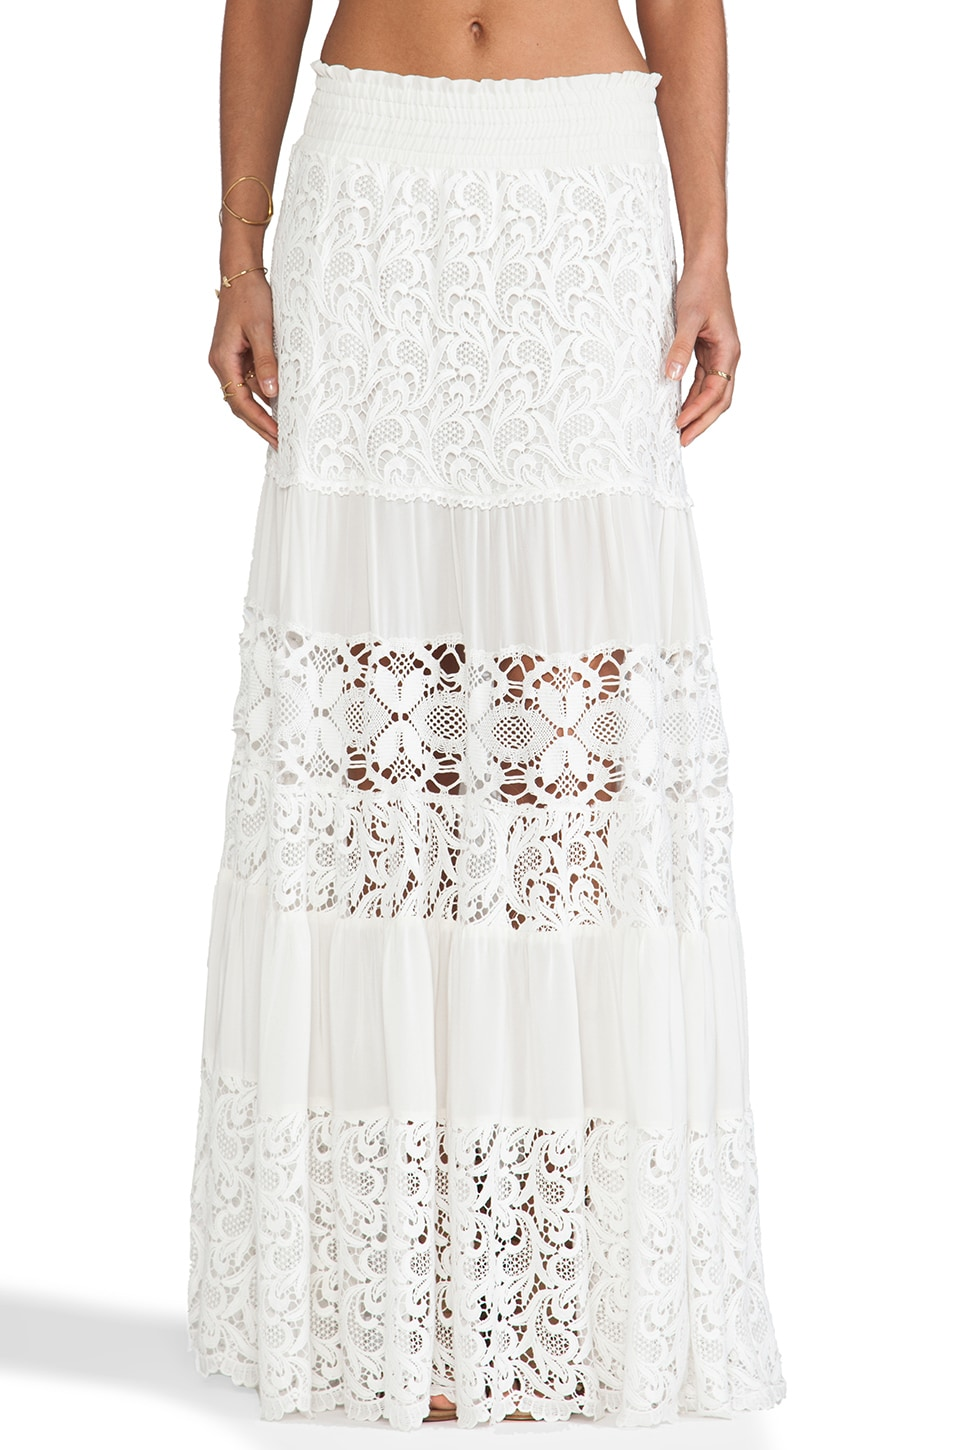 Alexis Liu Maxi Skirt in White Crochet